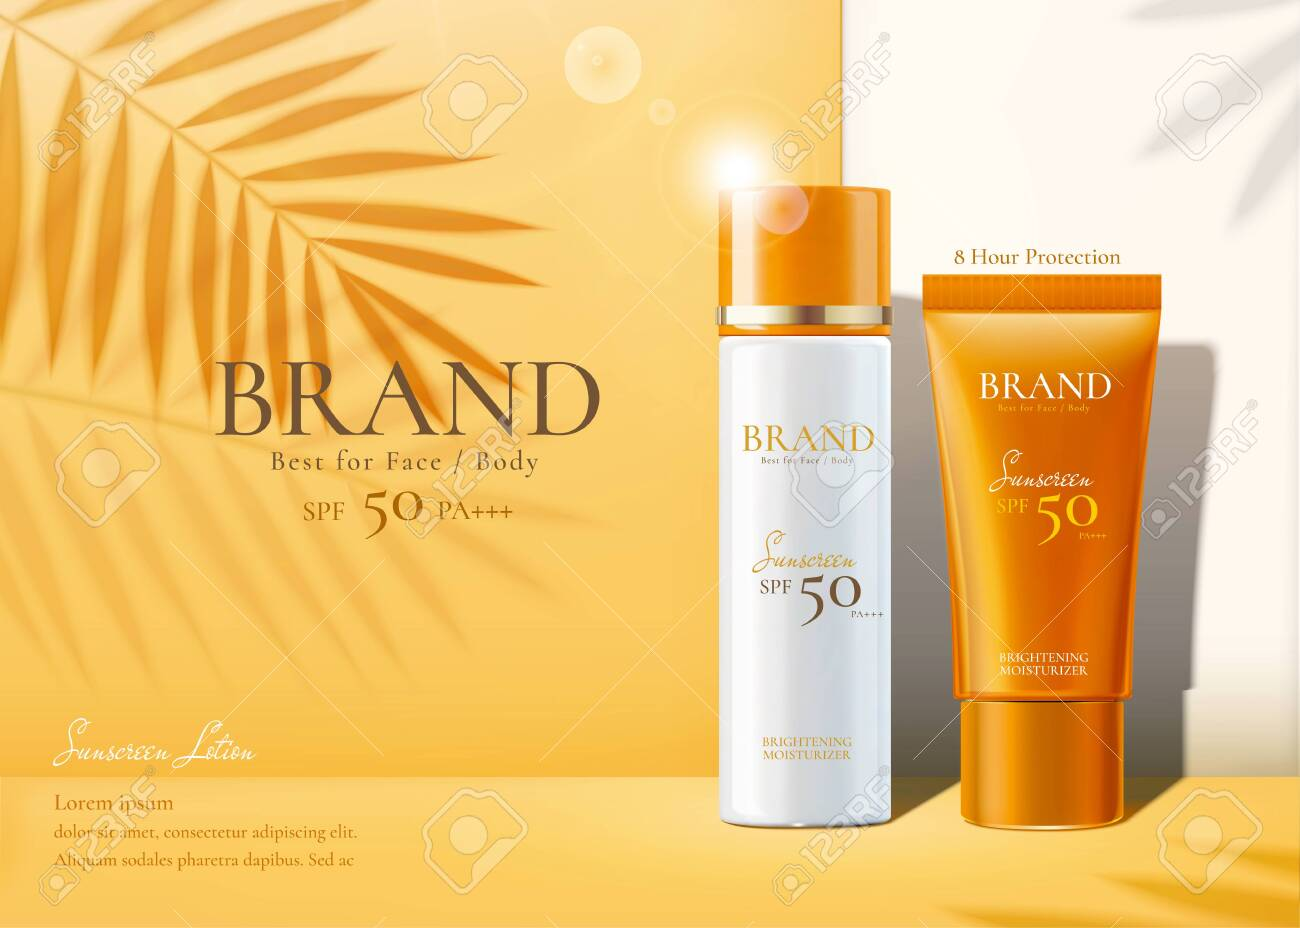 Sunscreen products set ads with summer palm leaves shadows on chrome yellow background in 3d illustration - 131645382